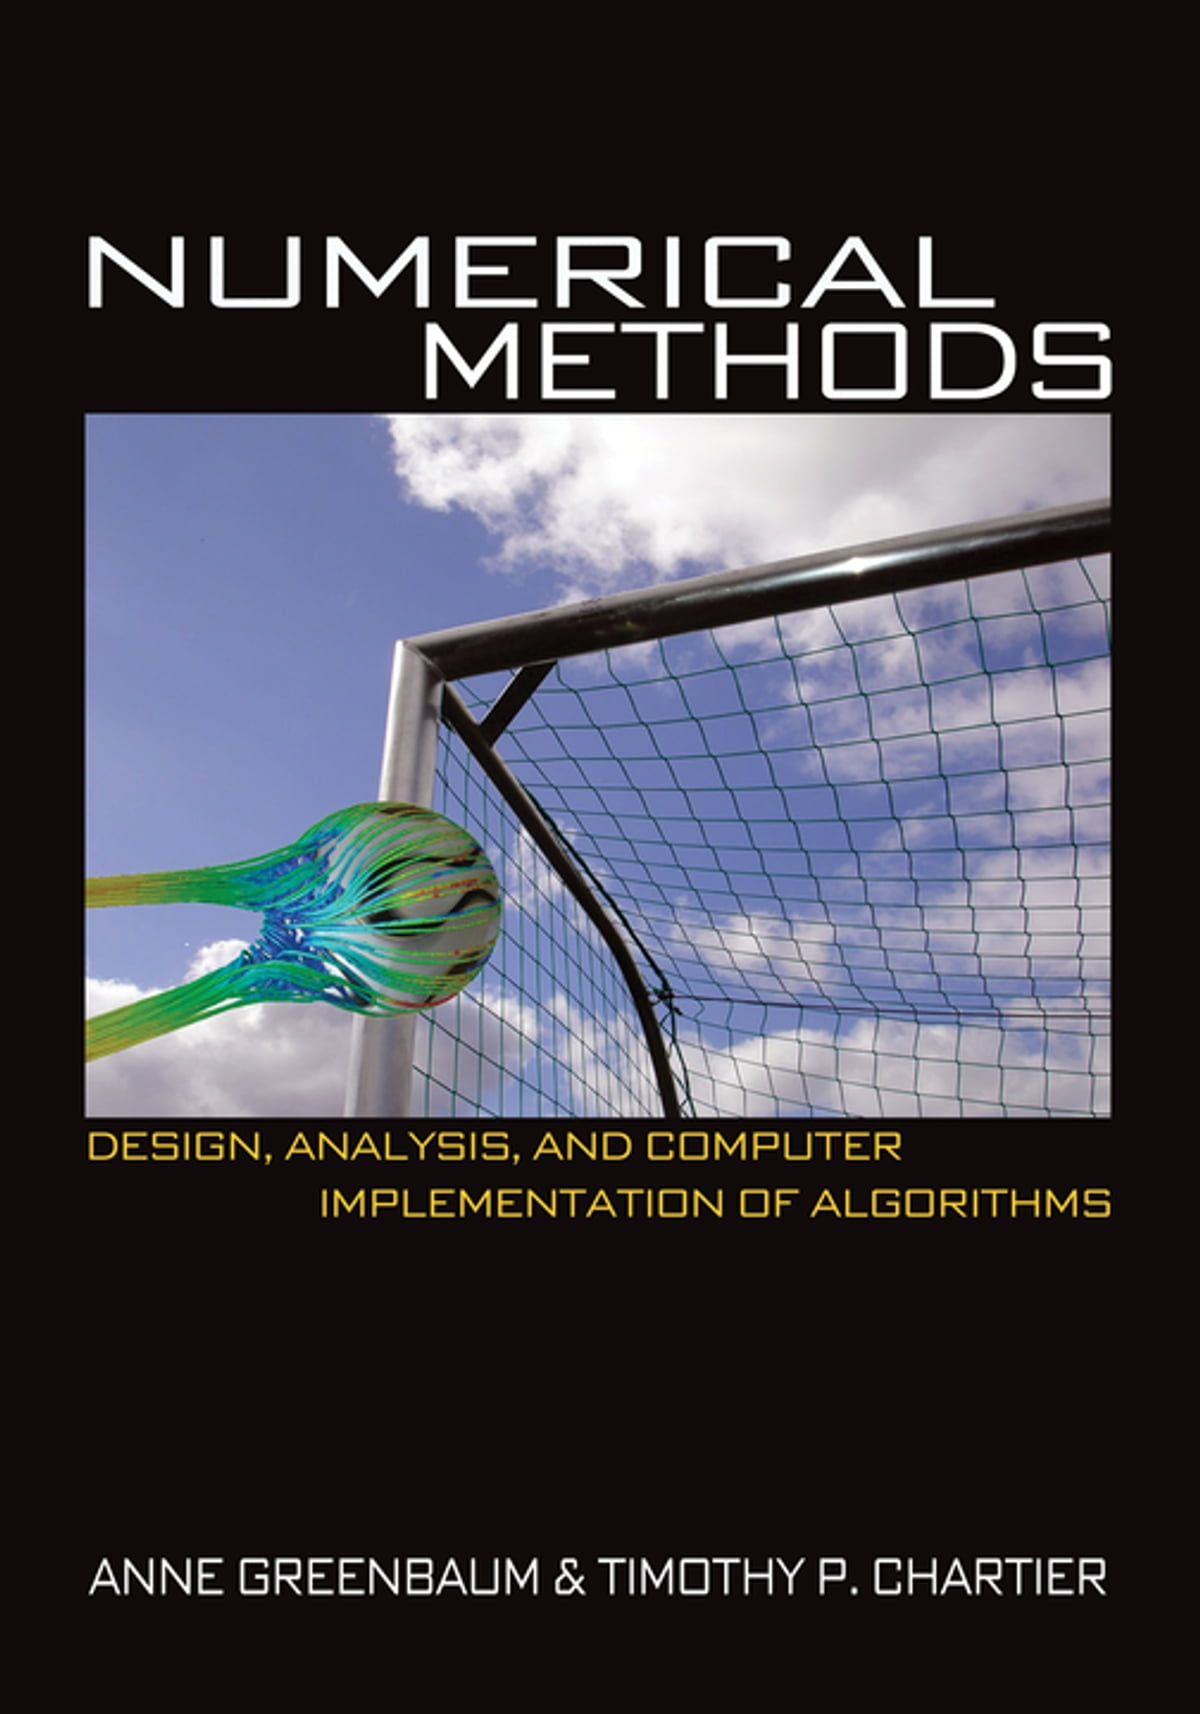 Partial differential equation methods for image inpainting ebook by numerical methods design analysis and computer implementation of algorithms ebook by anne greenbaum fandeluxe Image collections